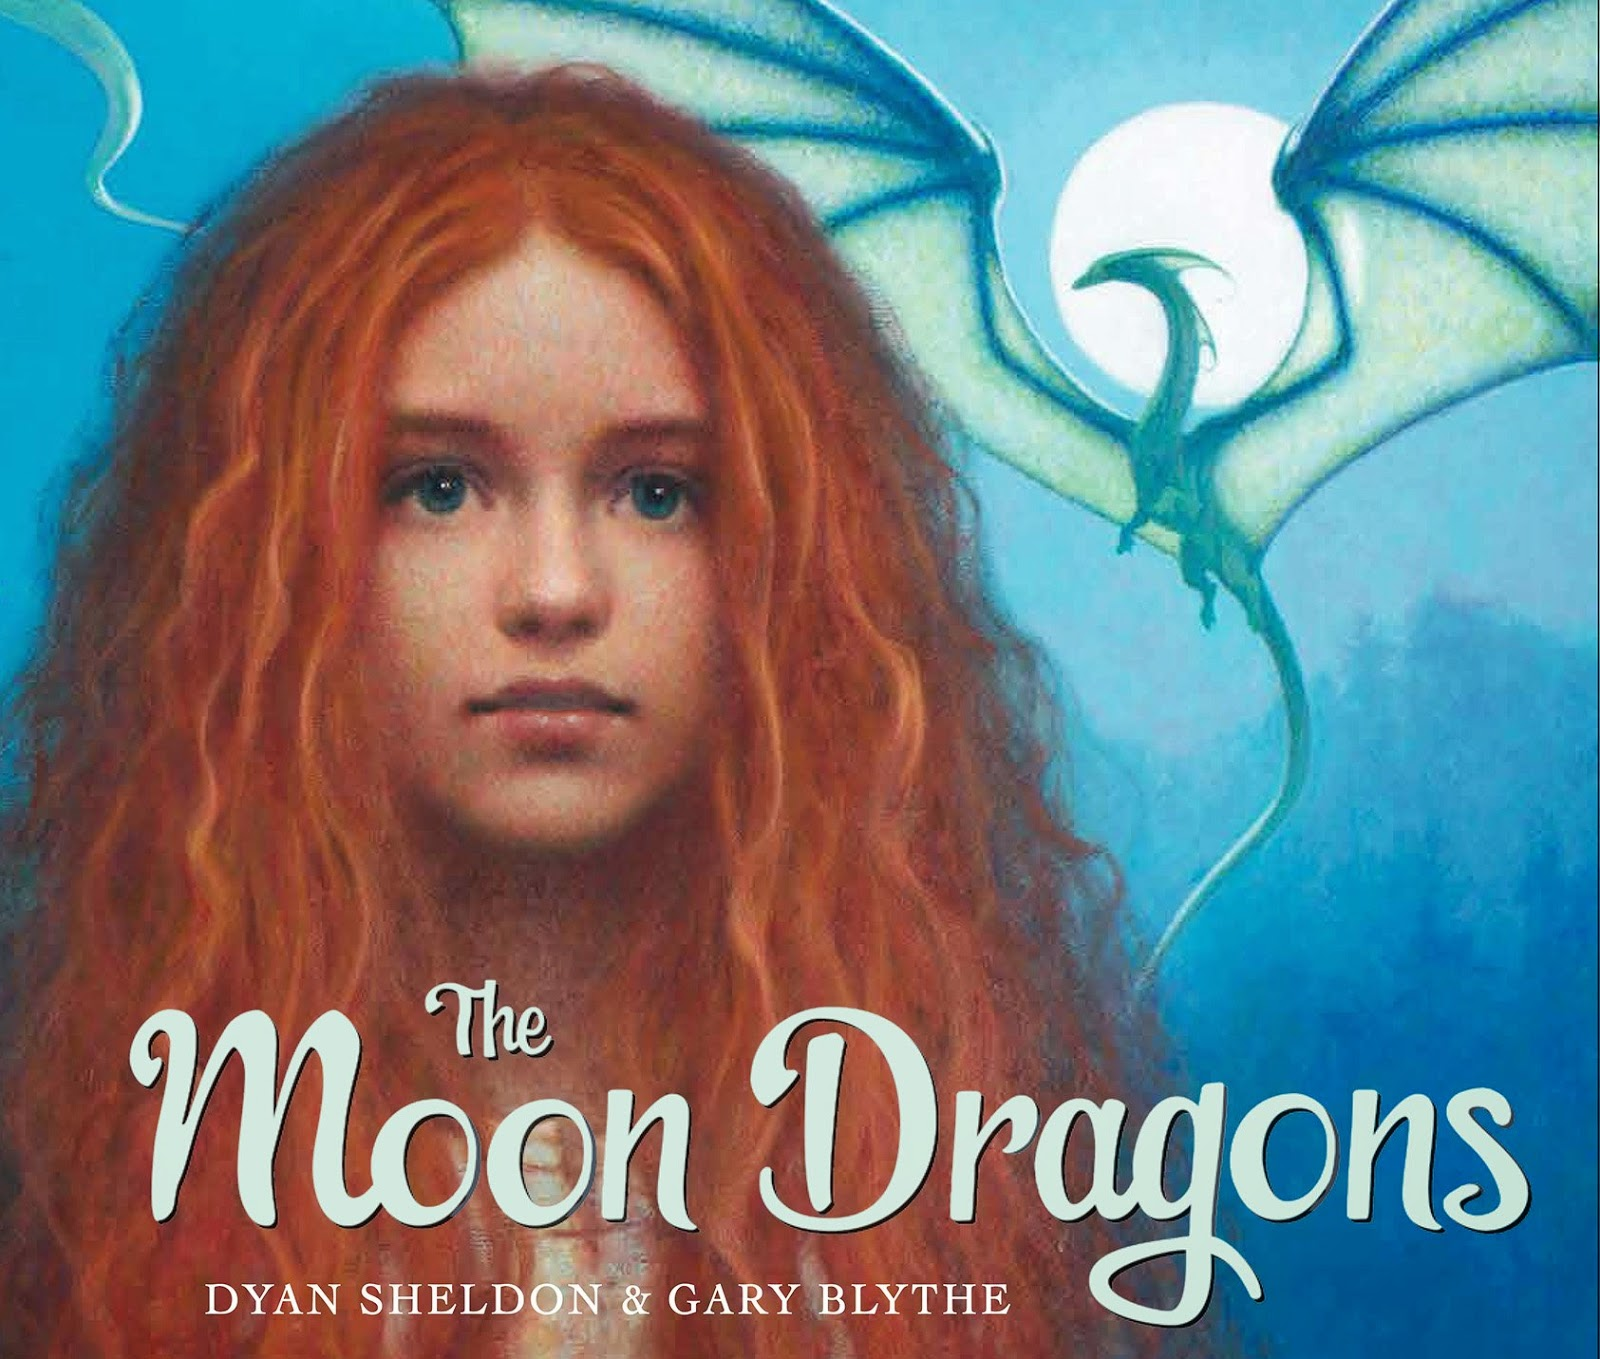 http://www.bookdepository.com/Moon-Dragons-Dyan-Sheldon/9781783440559